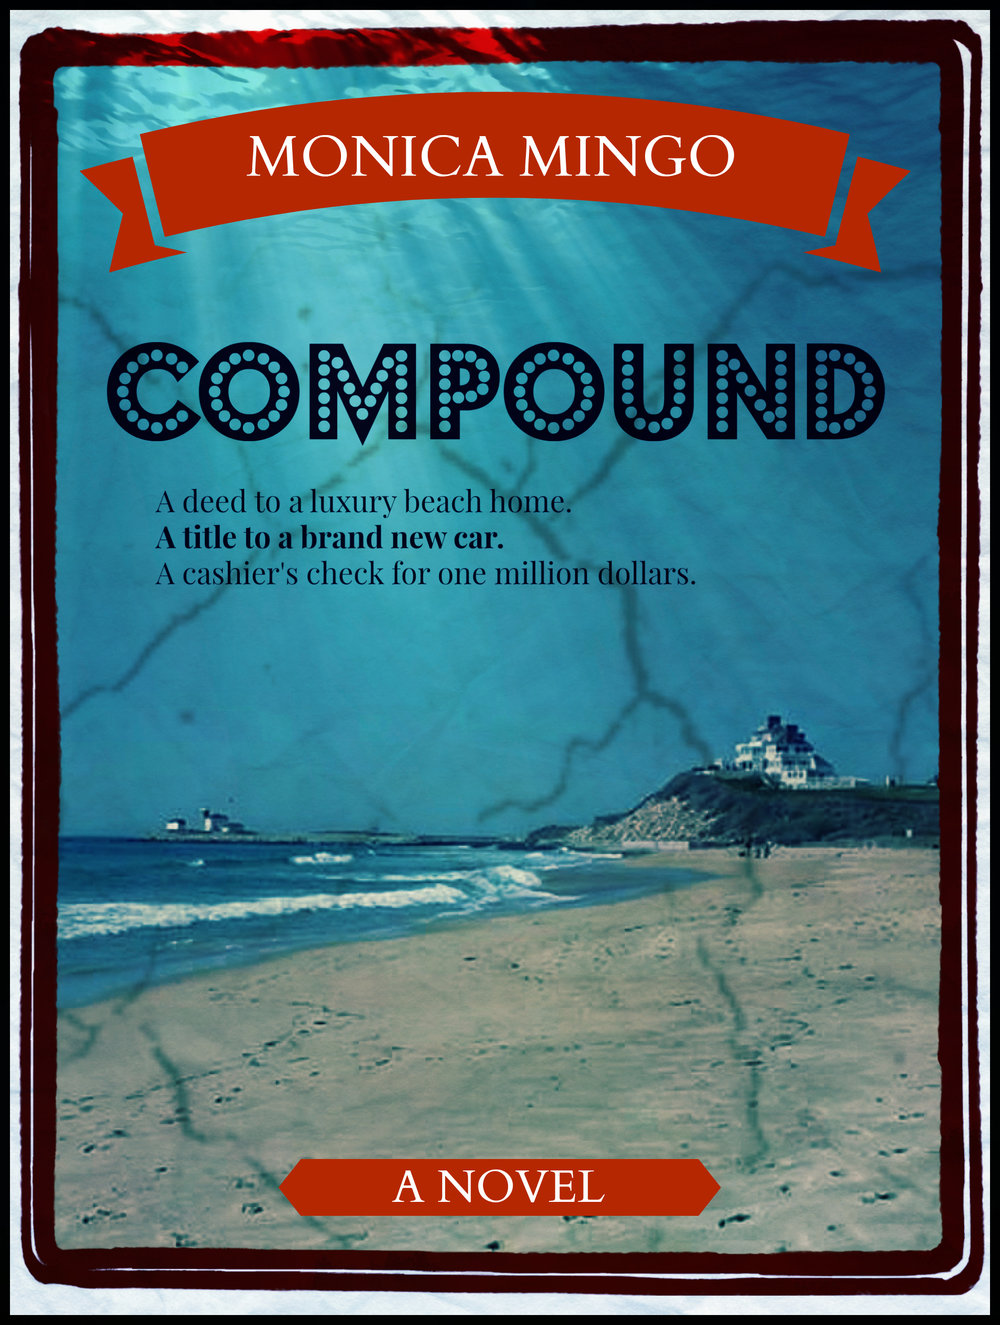 Compound  follows five strangers as they are each given a deed to a luxury beach home, a title to a new car and a cashier's check for one million dollars with promises of more to come.  Golden hasn't had the best life, yet is as loving and trusting as a puppy. She's unemployed and tanking financially while waiting for her fiancé to return and help save her family home from foreclosure, marry her and start a family. When she's contacted by the lawyer representing an anonymous benefactor, she attributes the windfall to the grace of God. When the lawyer also informs her that her fiancé is living with another woman and has a baby on the way, the blow knocks her sideways.  Golden warms up slowly to her neighbors at The Pointe, the luxury beach community where her new vacation home is located. They start working out together, sharing intimate secrets, having regular dinners and forming close bonds that celebrate each other and their differences. The enjoyment of their beach summer is rocked by one explosive, climactic event leaving someone dead, many confused and all conflicted once they discover the reason they have been brought together.   We've all been hurt a multitude of times and most things too good to be true generally are, but what if they are given in secret to right past wrongs? What if the worst of your life was evaluated and payment was made to soften all those blows? But payment from whom? For what ills? And what consequences does accepting payment bring?